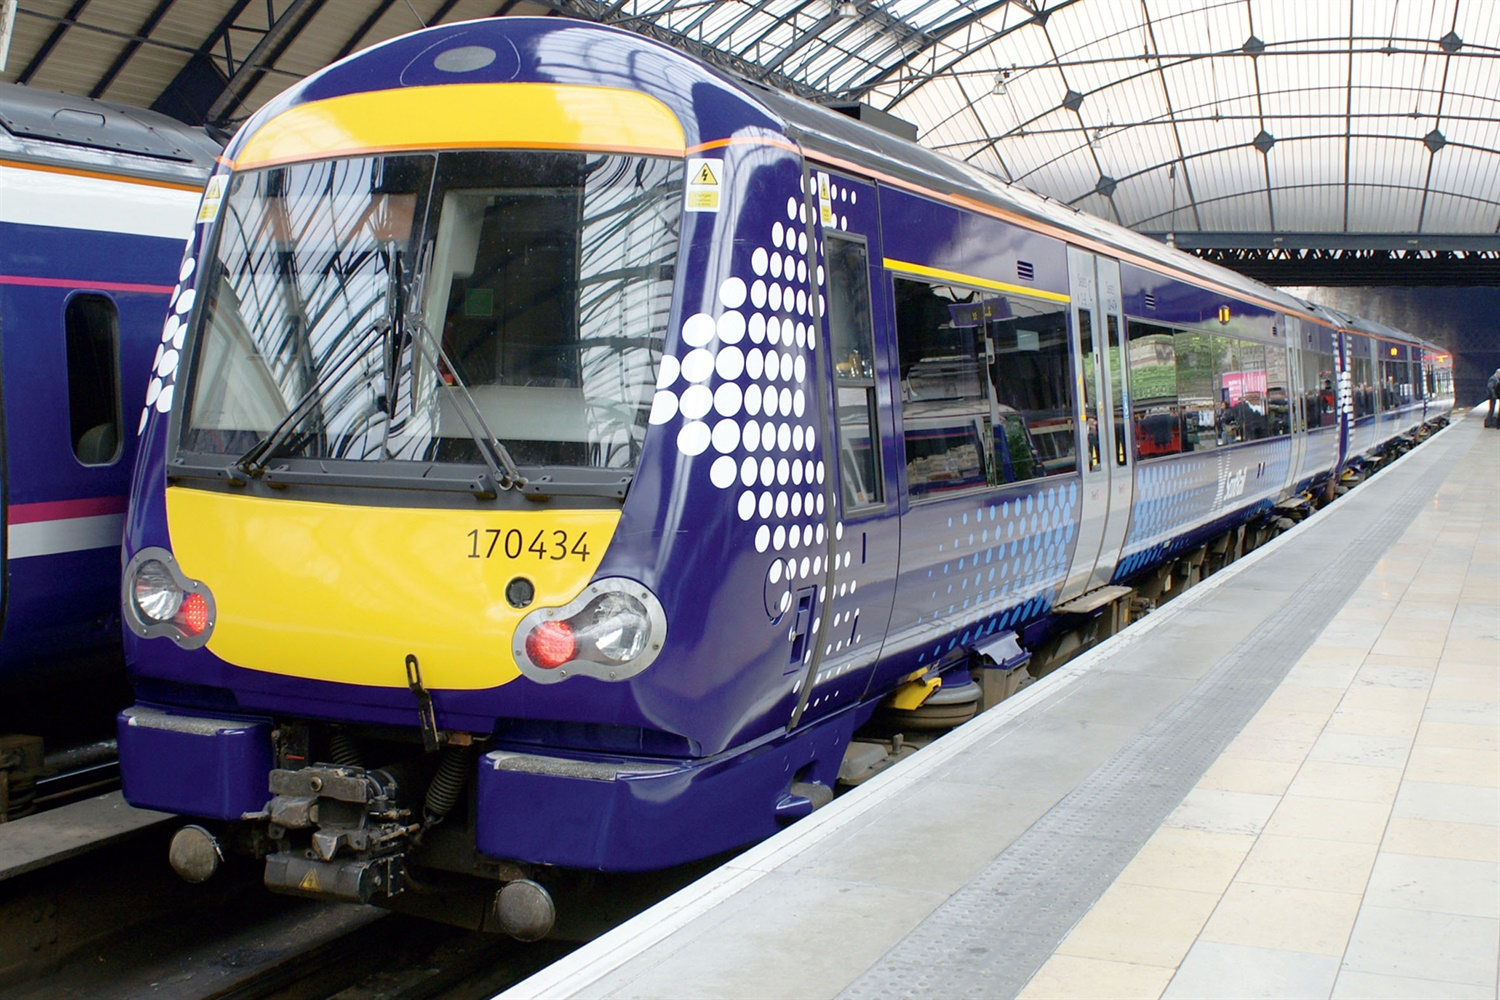 New franchises take over Scotland's railway and sleeper services